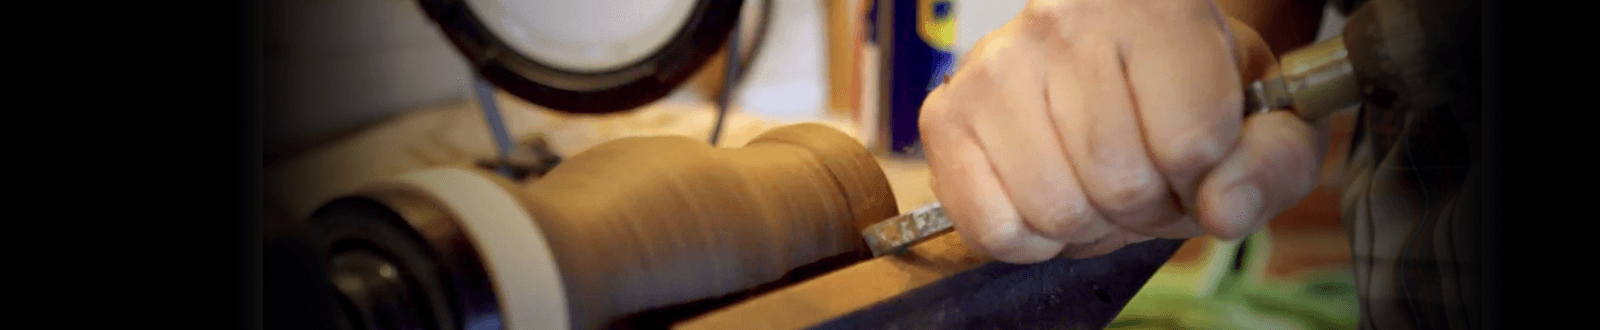 WD-40® Brand is Always up for the Challenge